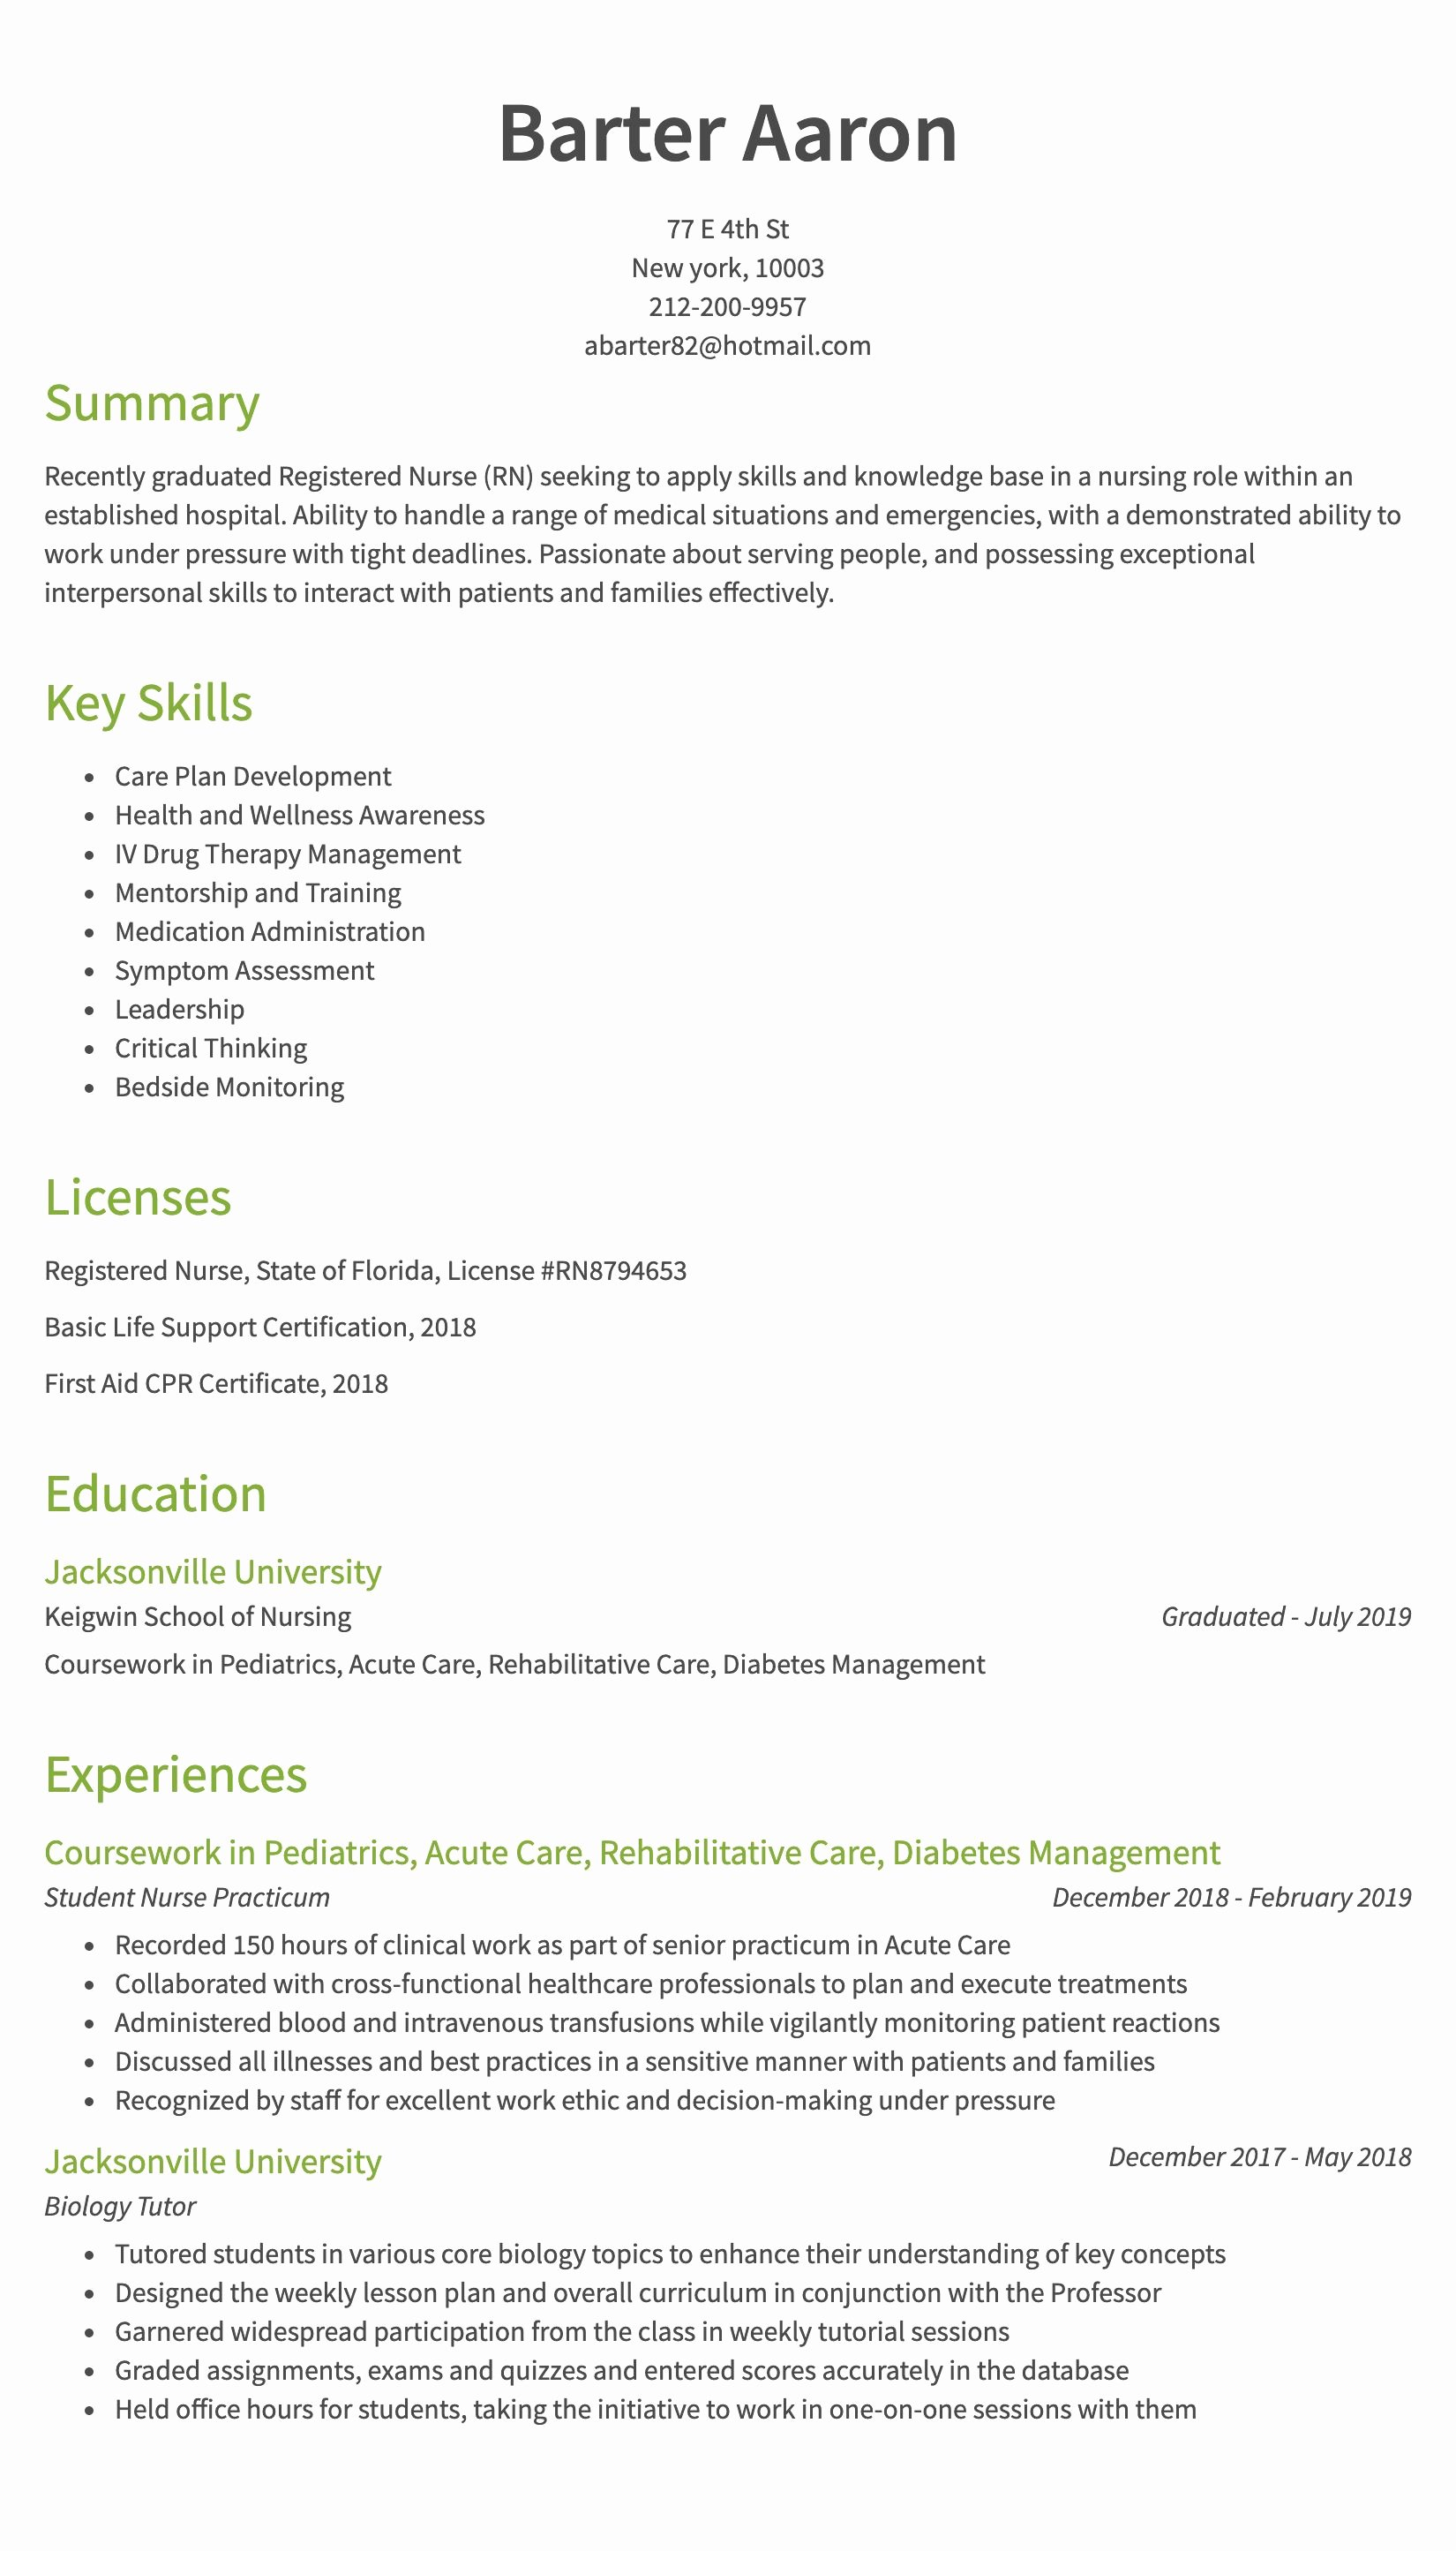 Nursing Clinical Experience Resume Unique 30 Nursing Resume Examples & Samples Written by Rn Managers